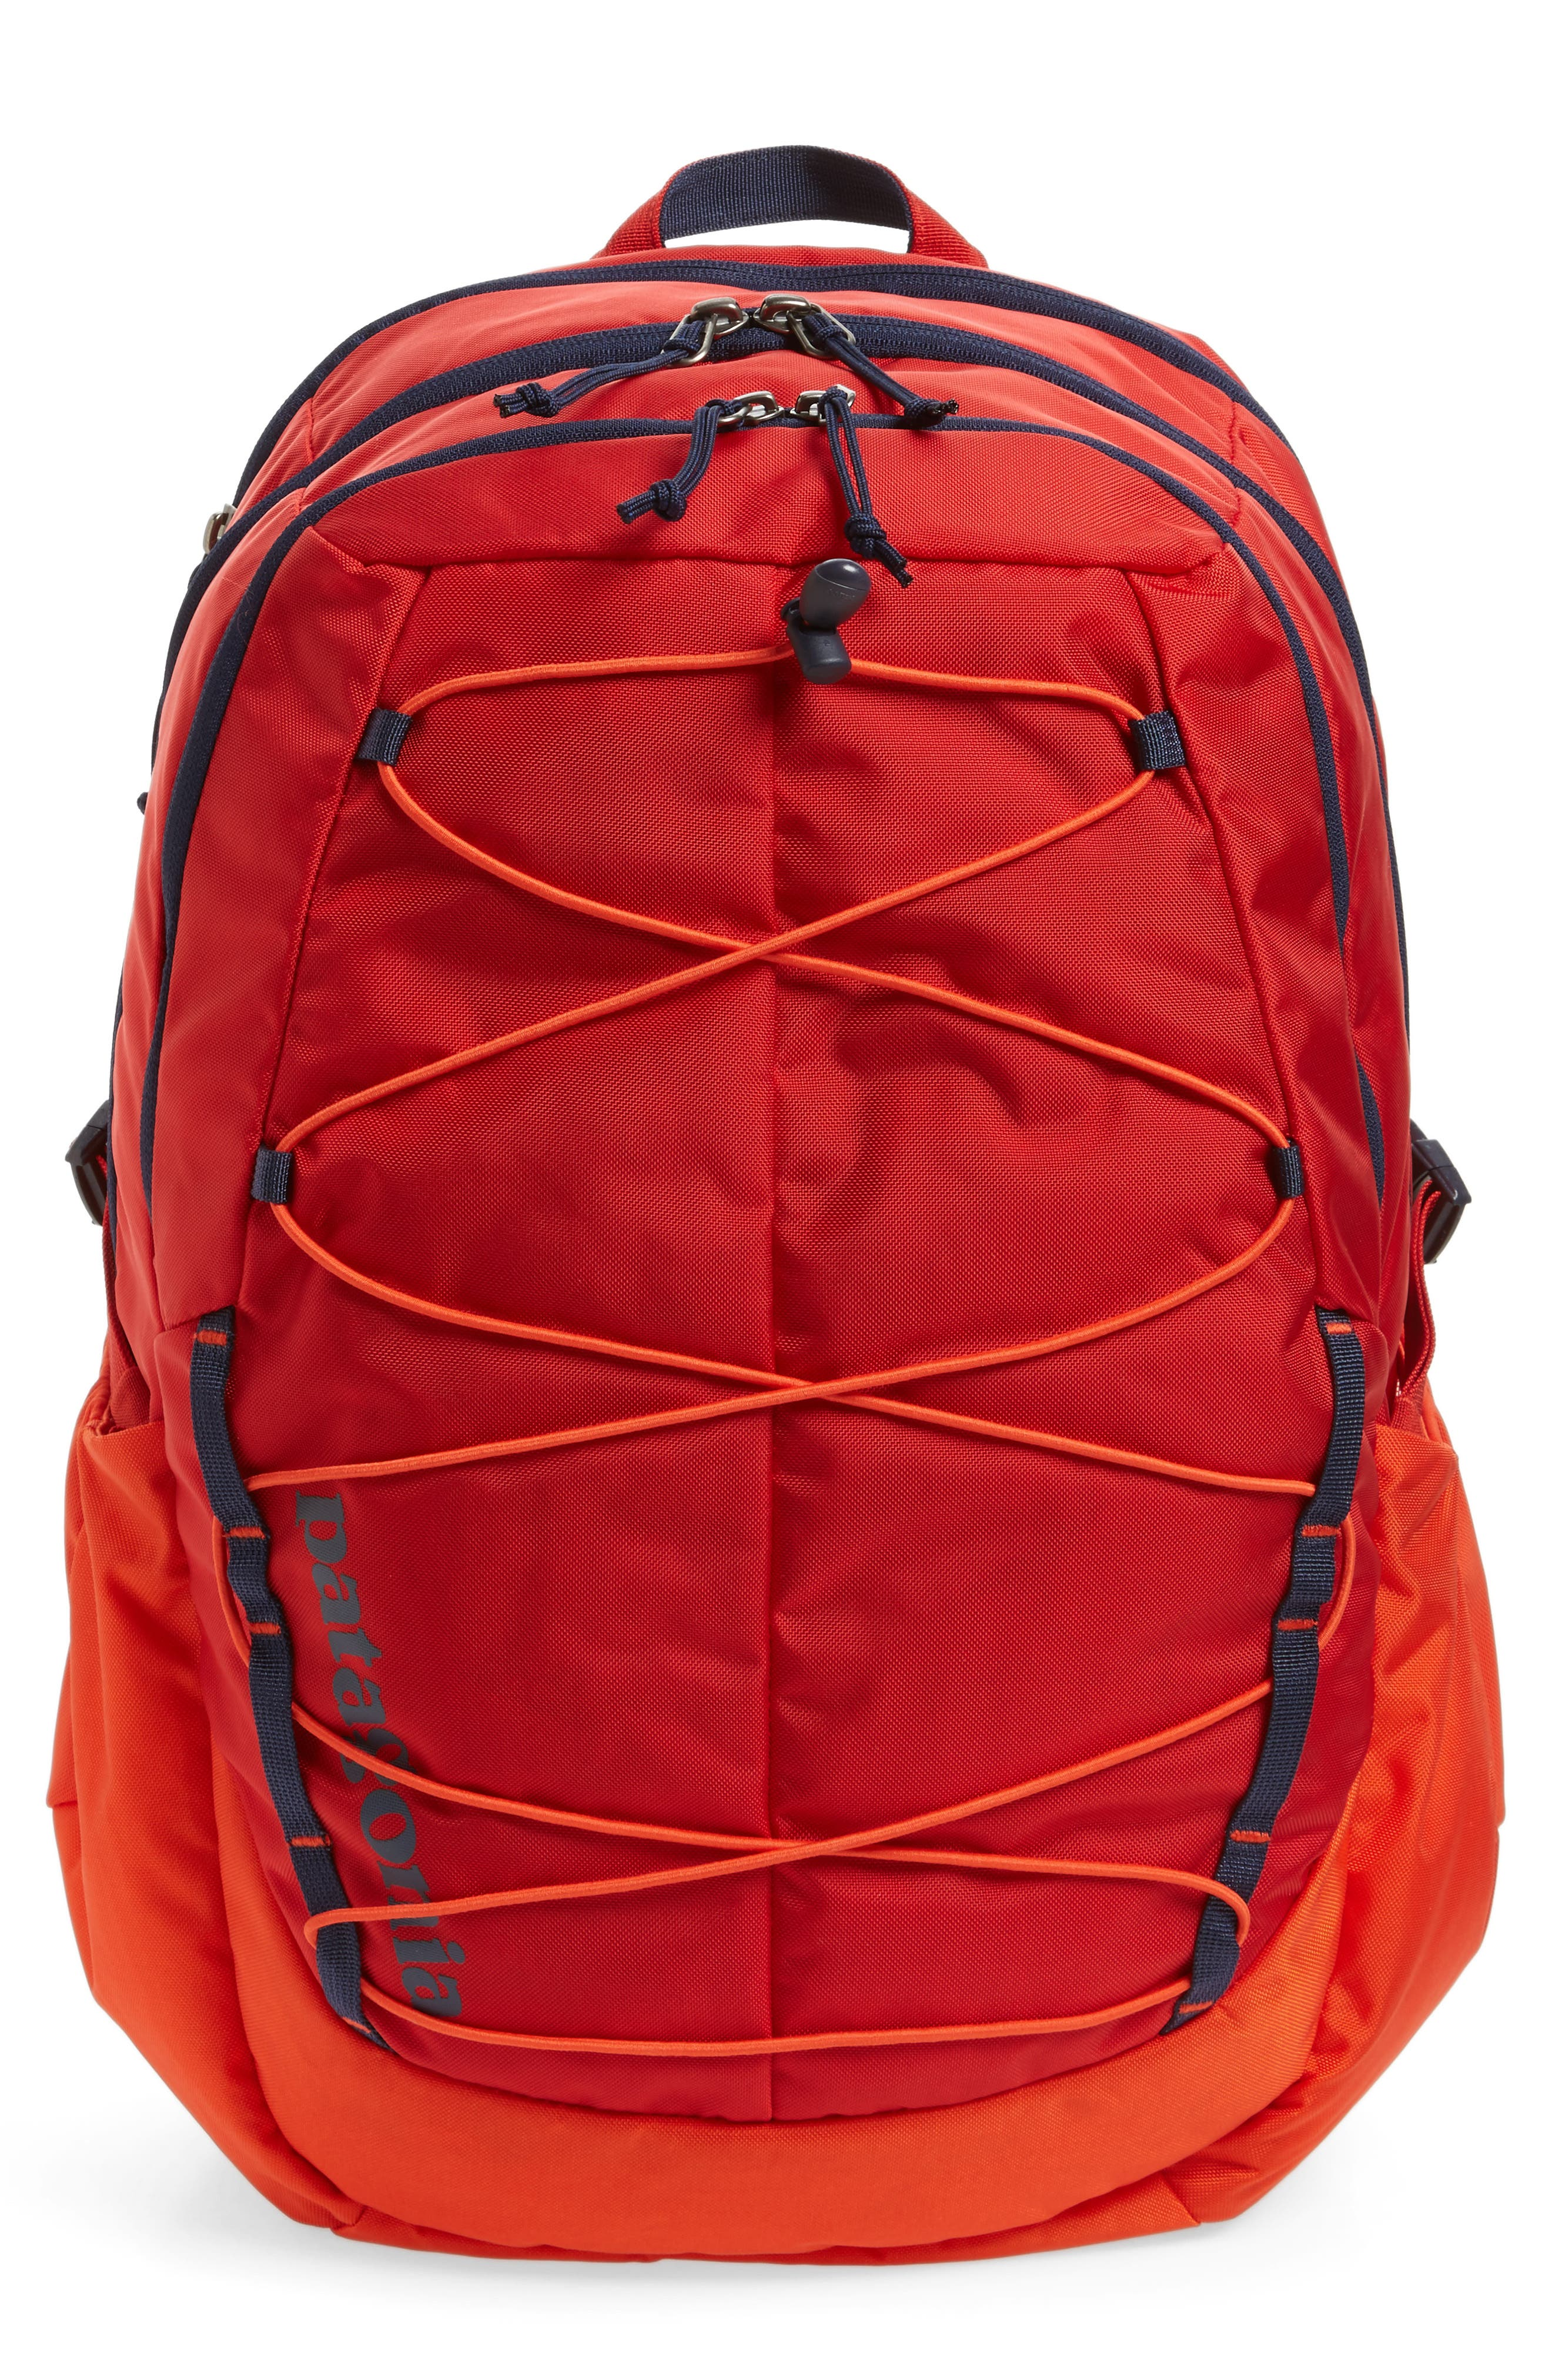 30L Chacabuco Backpack,                             Main thumbnail 1, color,                             Paintbrush Red